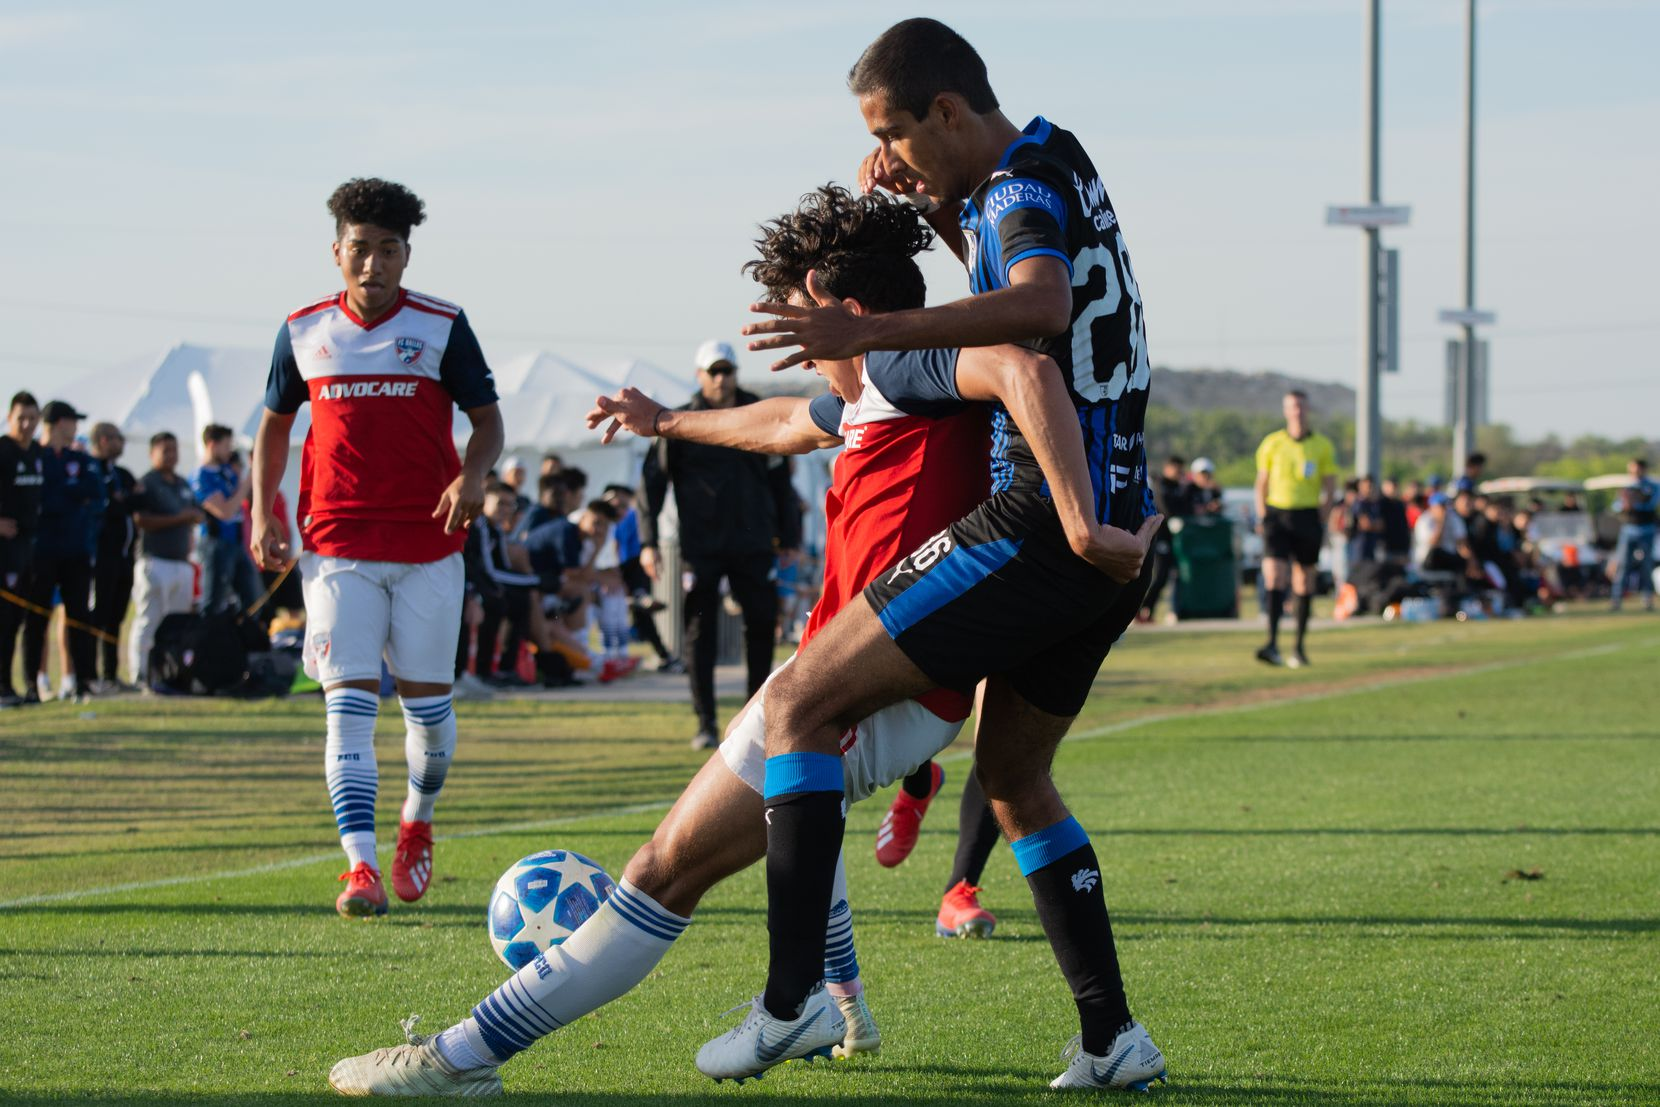 Johan Gomez shield off a Queretaro defender in the 2019 Dallas Cup Super Group at MoneyGram Park.  Kevin Bonilla looks on in the background.